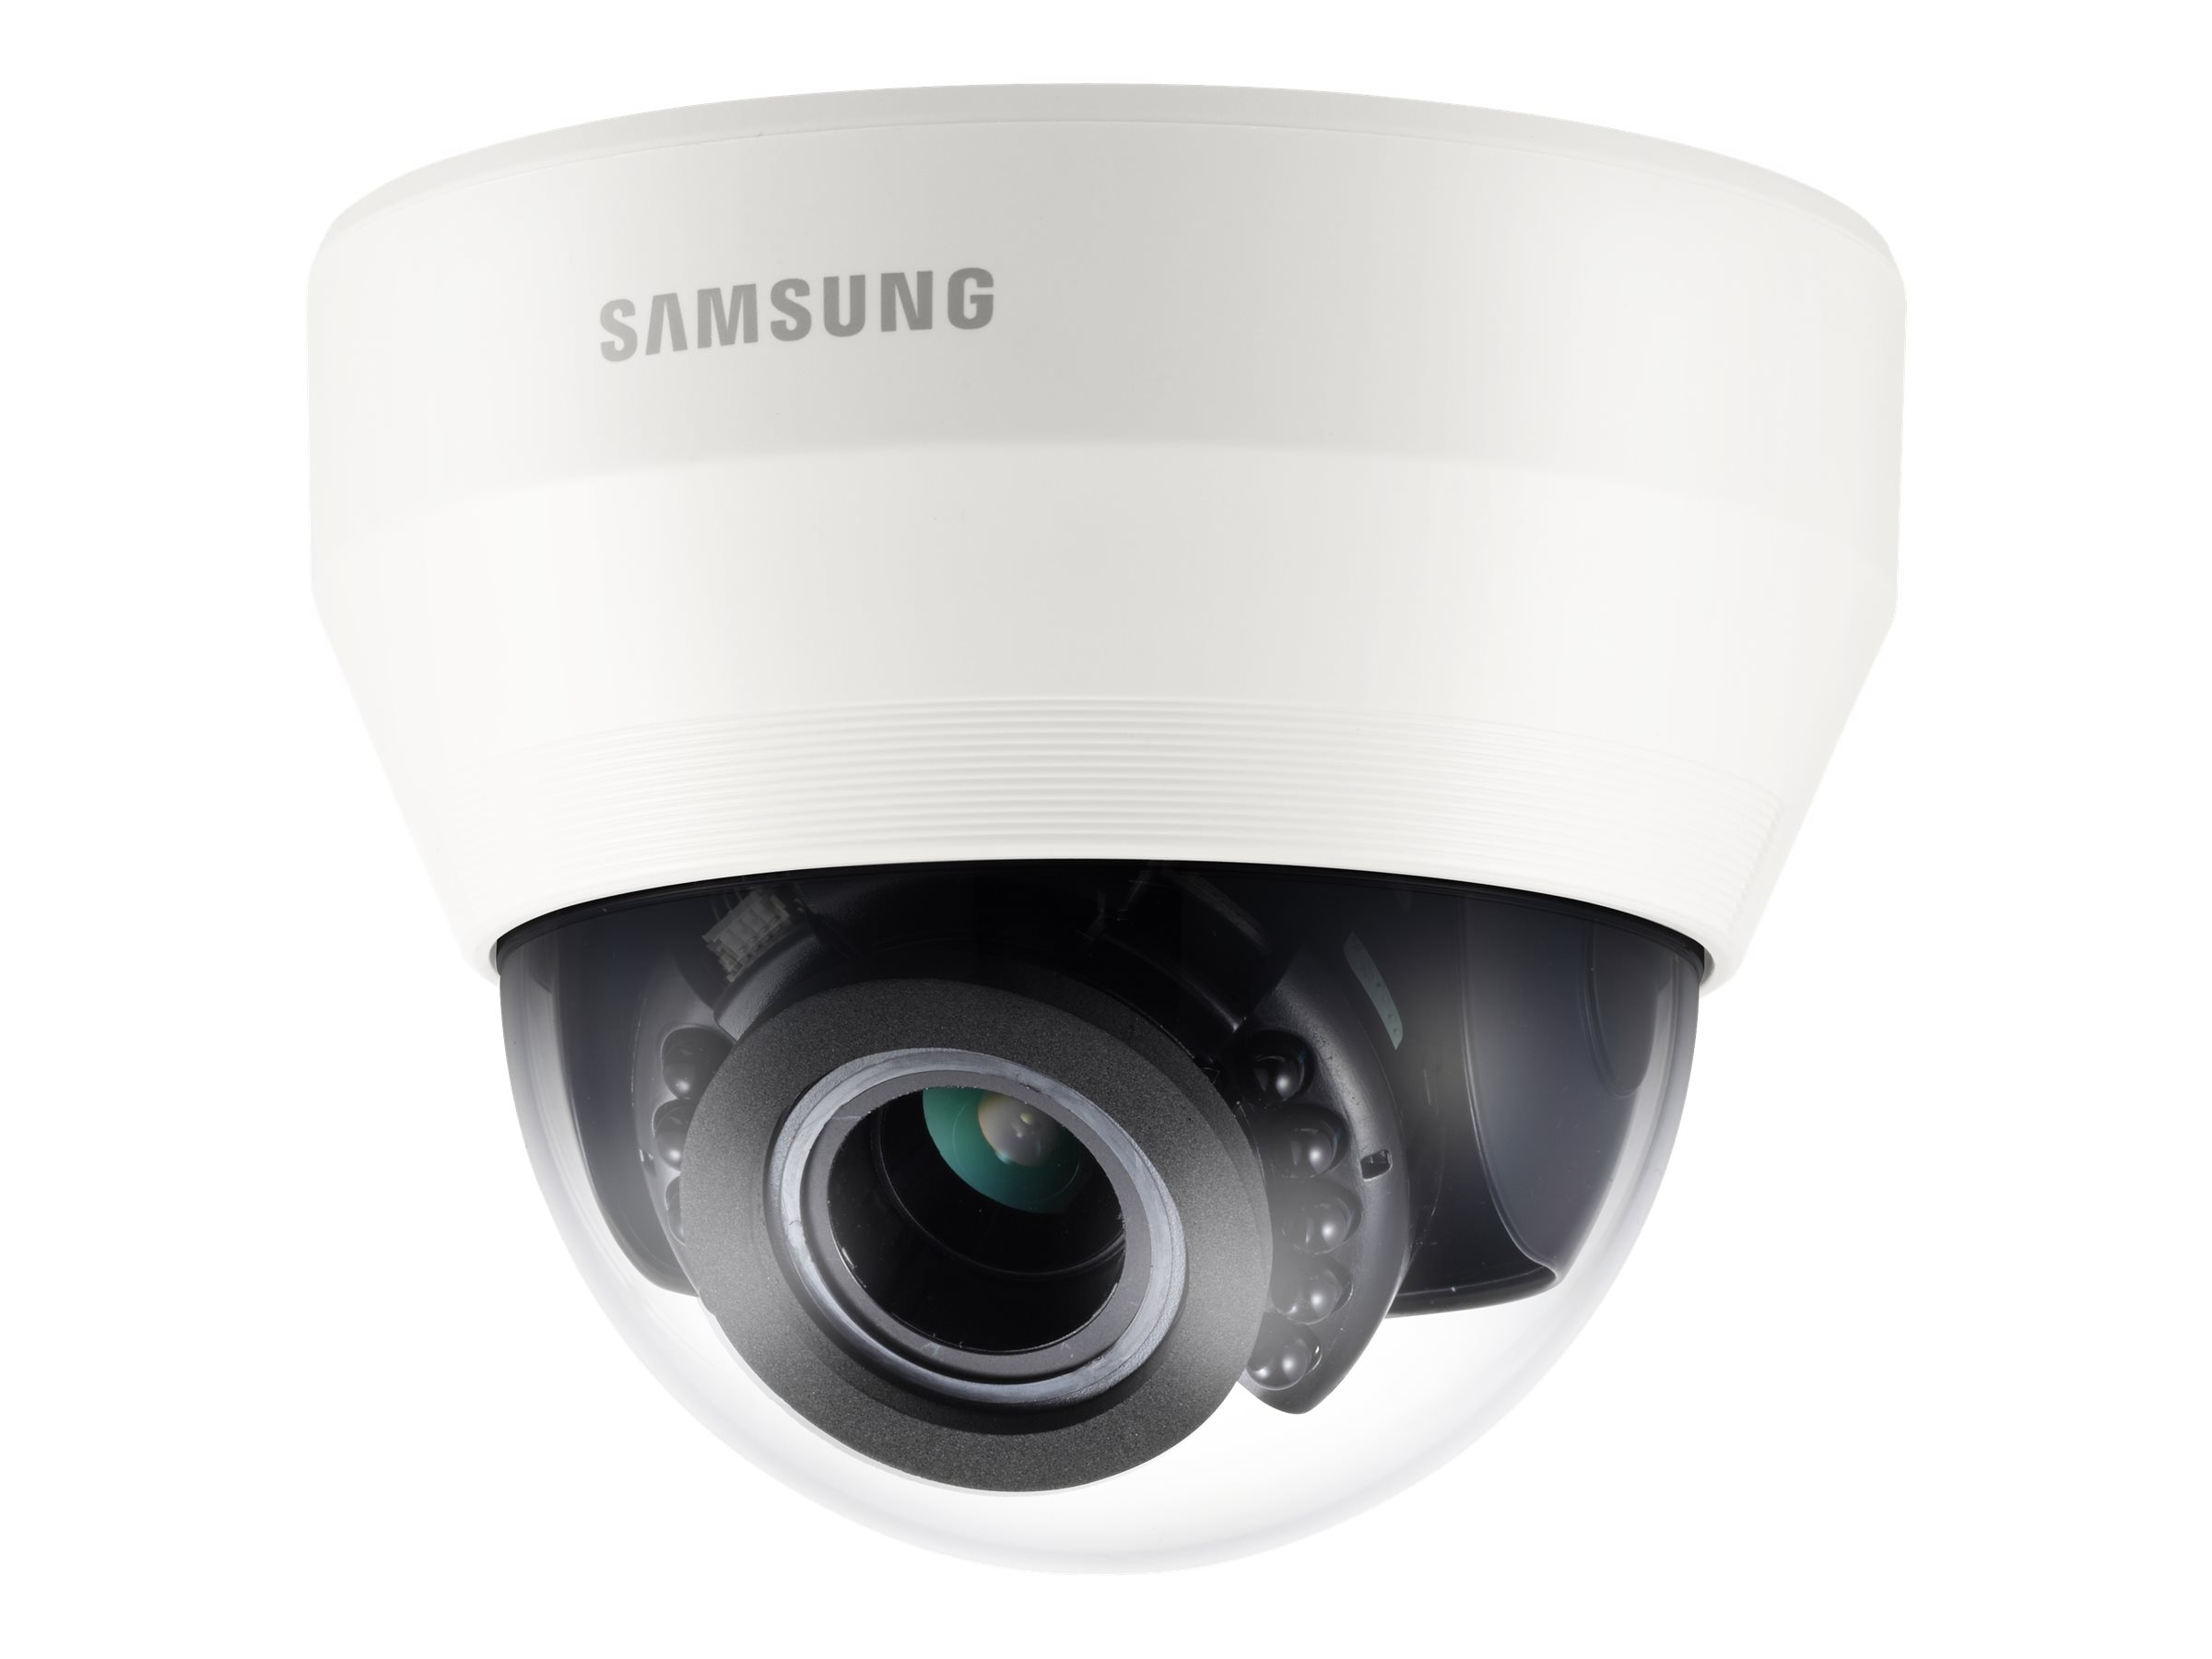 Samsung 1080p Full-HD IR Dome Camera, White